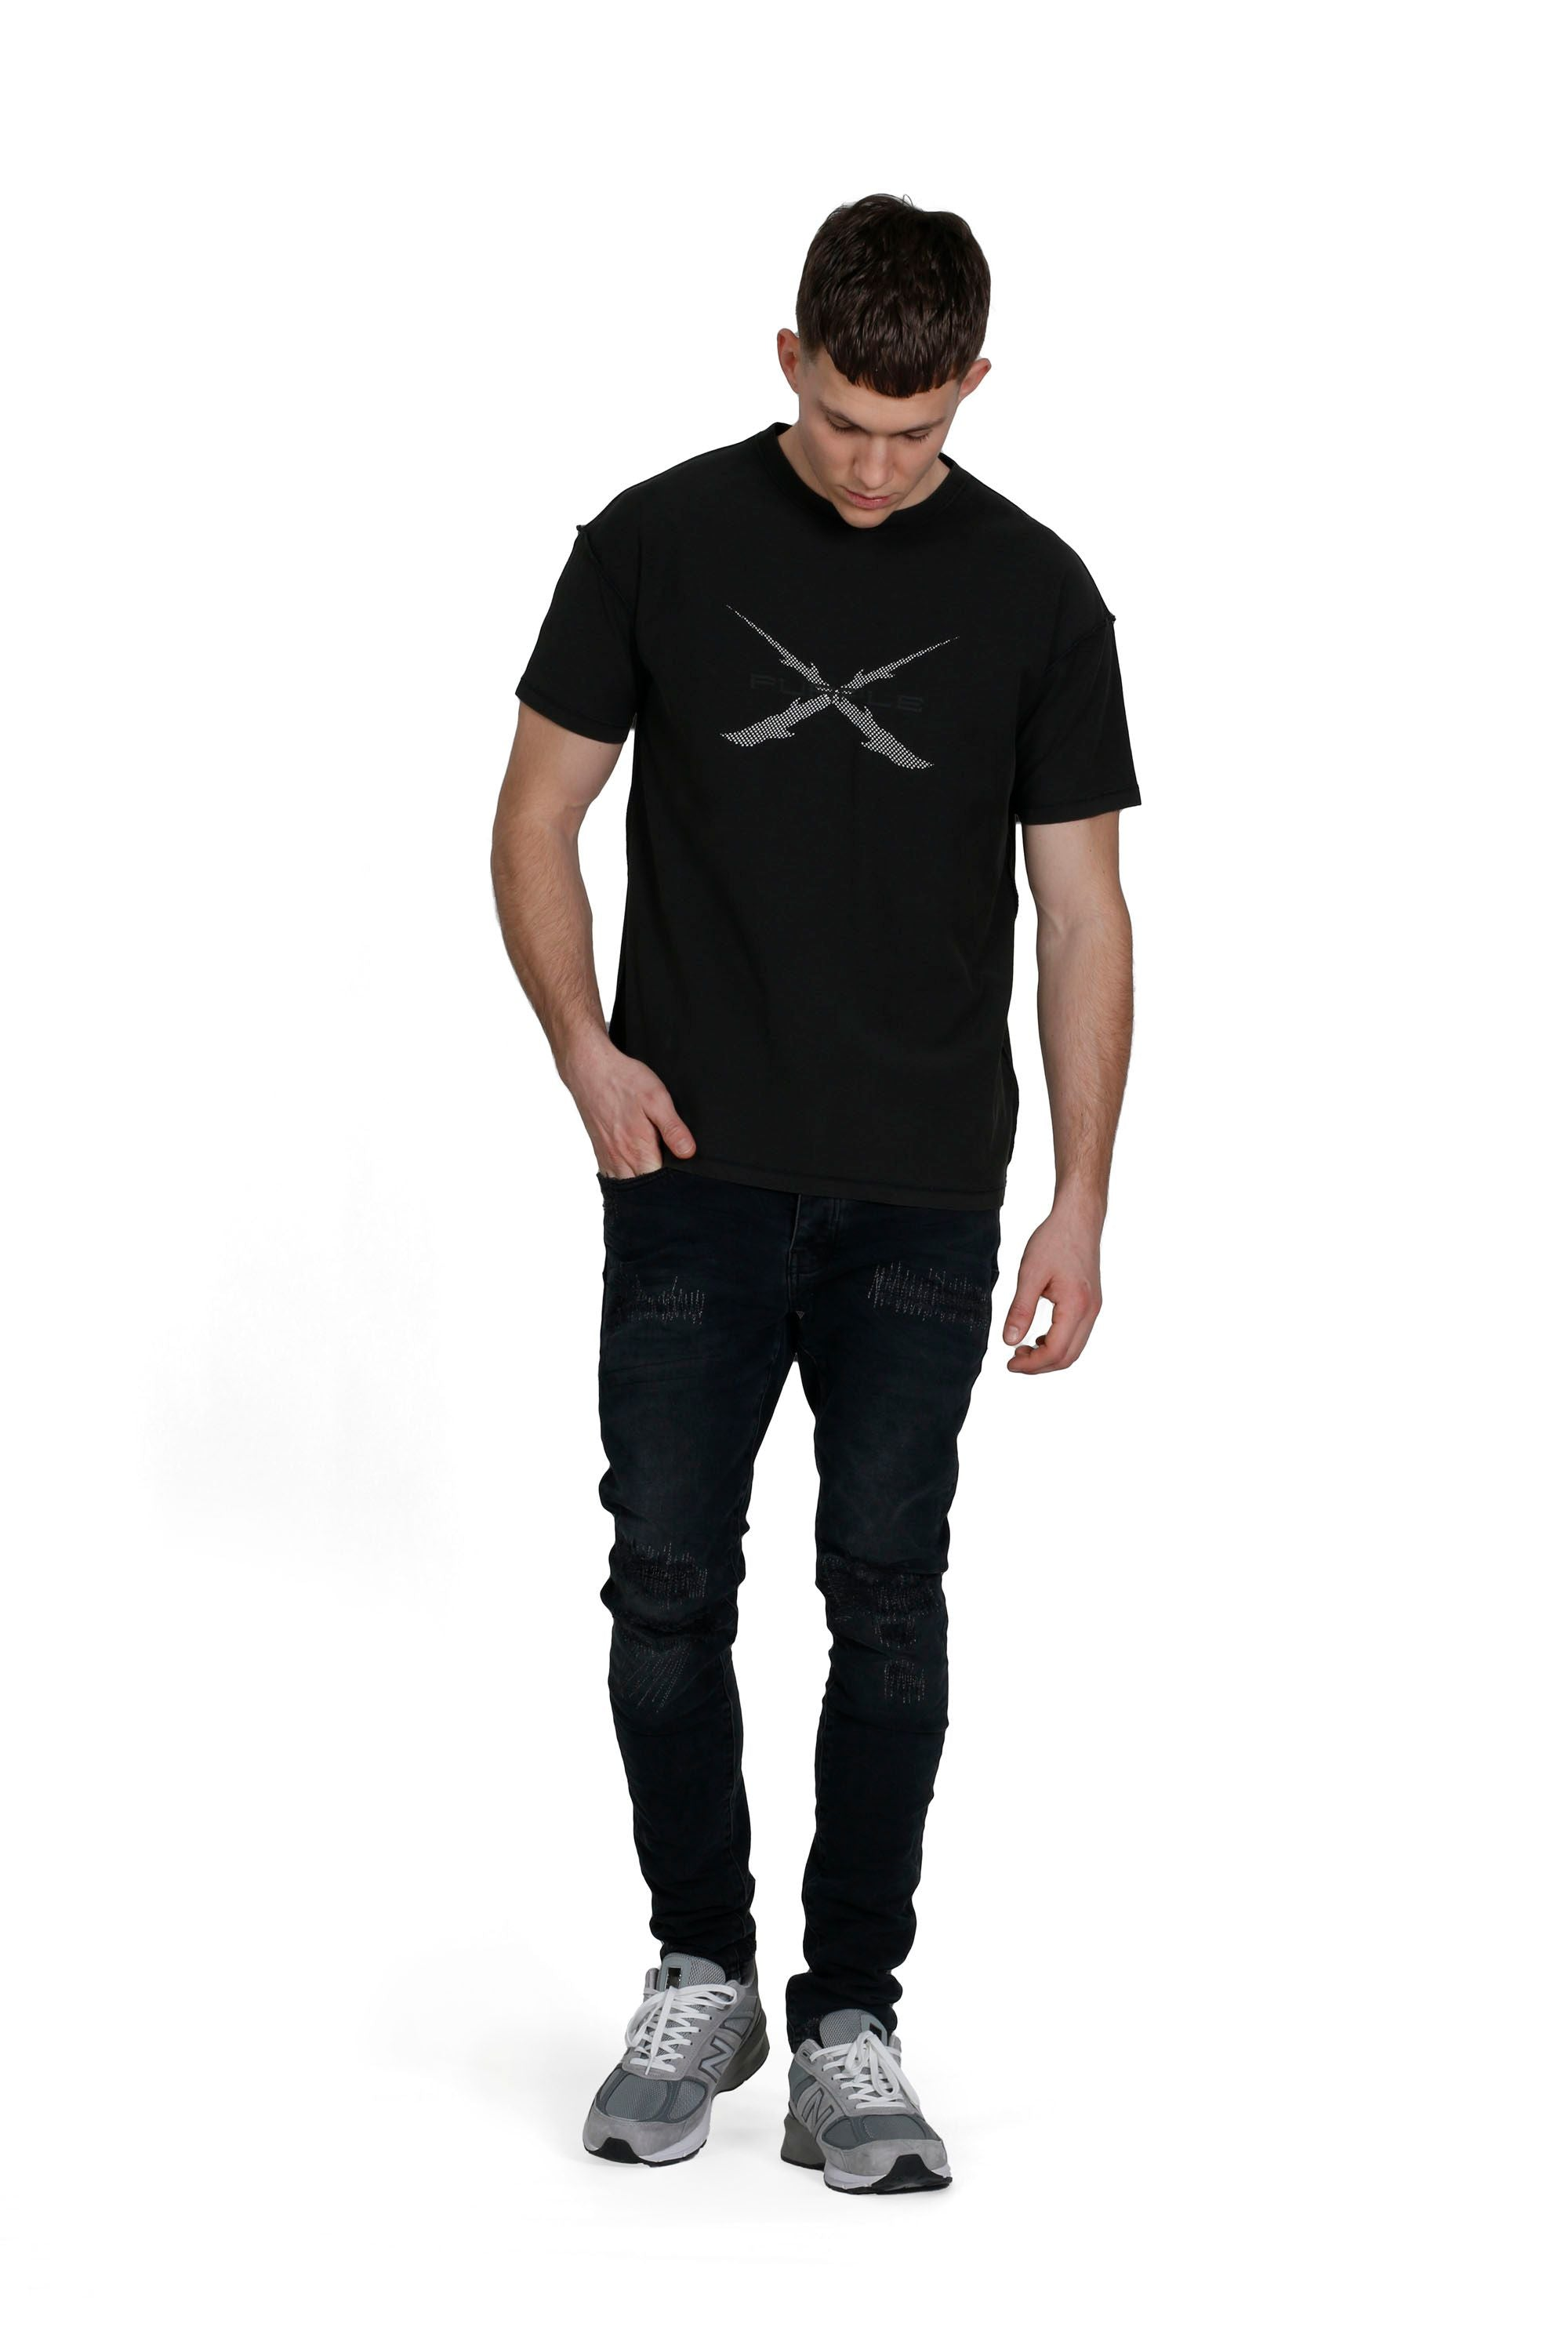 P101 RELAXED FIT - ANTLER BLACK